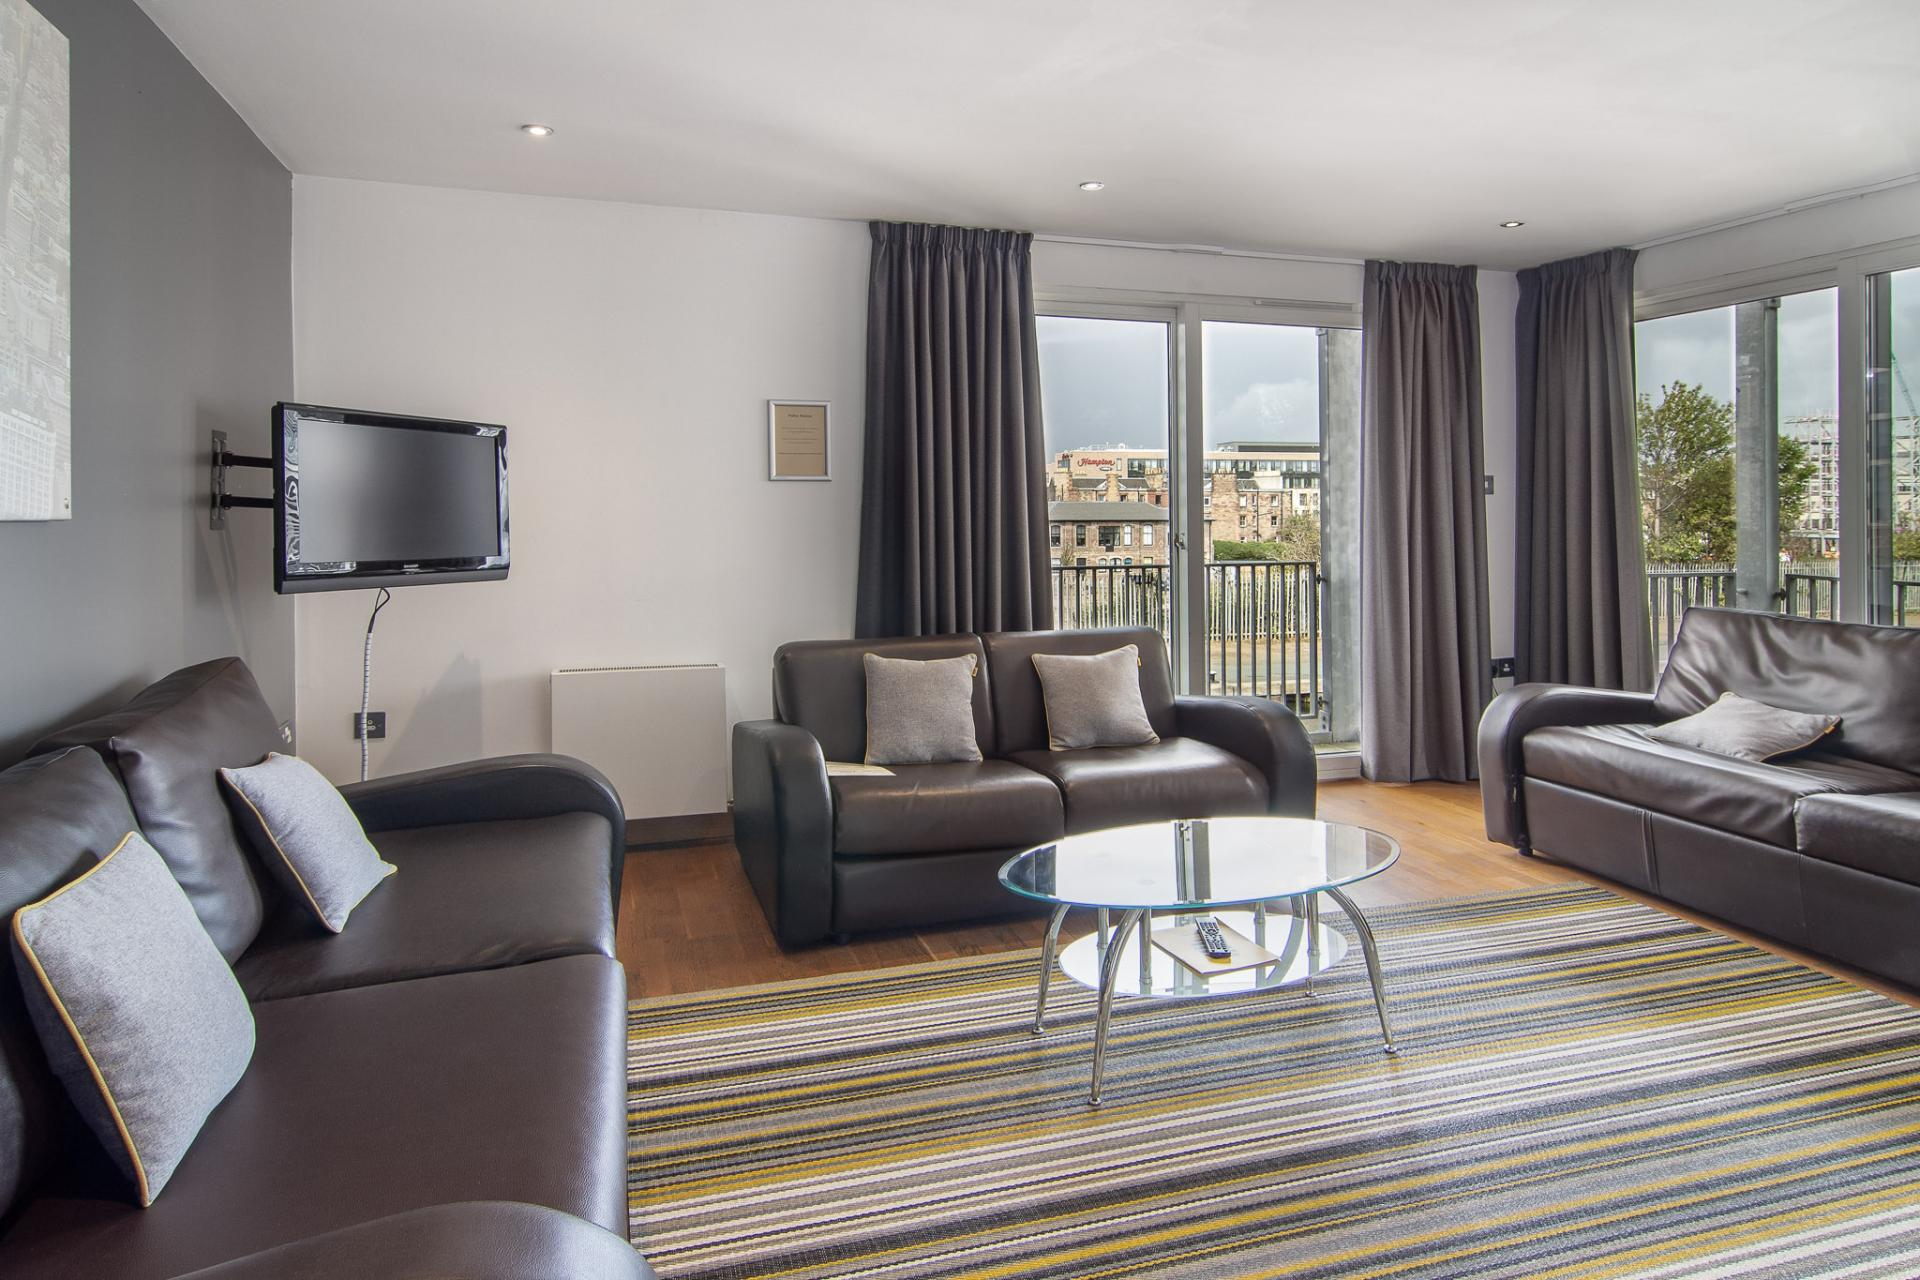 Sofa at Staycity Edinburgh Leamington Wharf, Haymarket, Edinburgh - Citybase Apartments